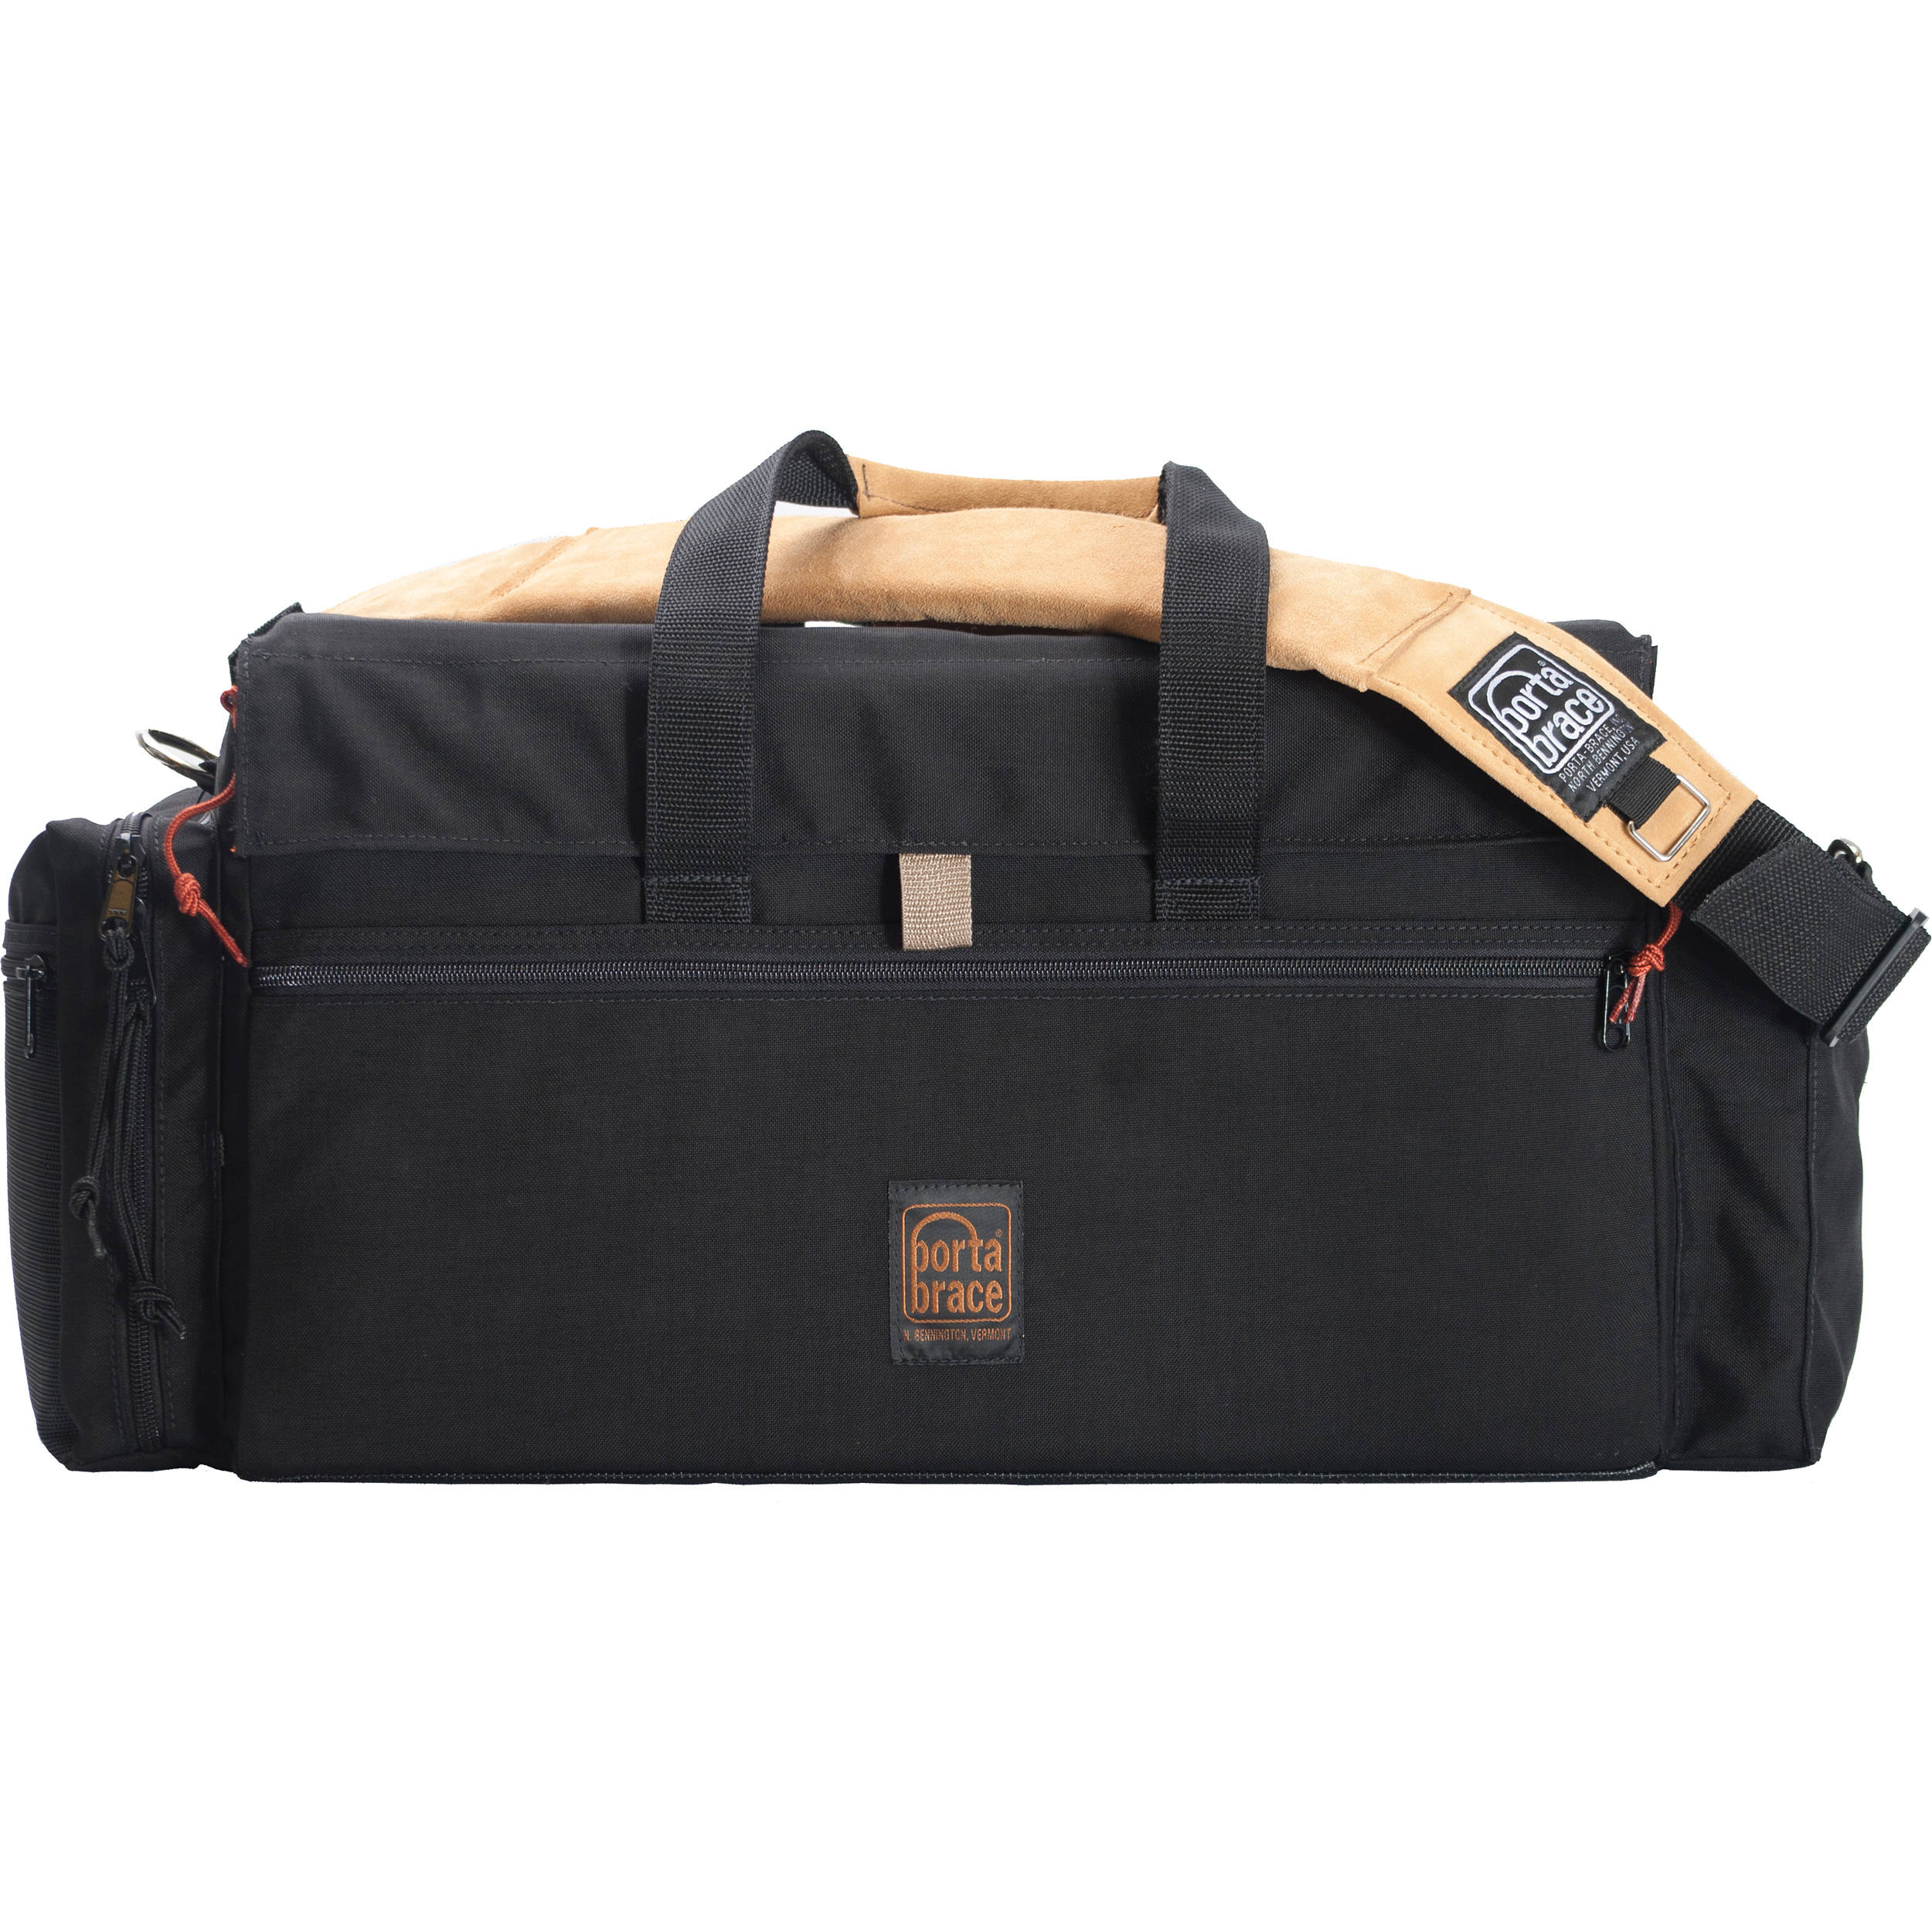 Porta Brace DVO-3R Large Carrying Case (Black with Copper Trim)